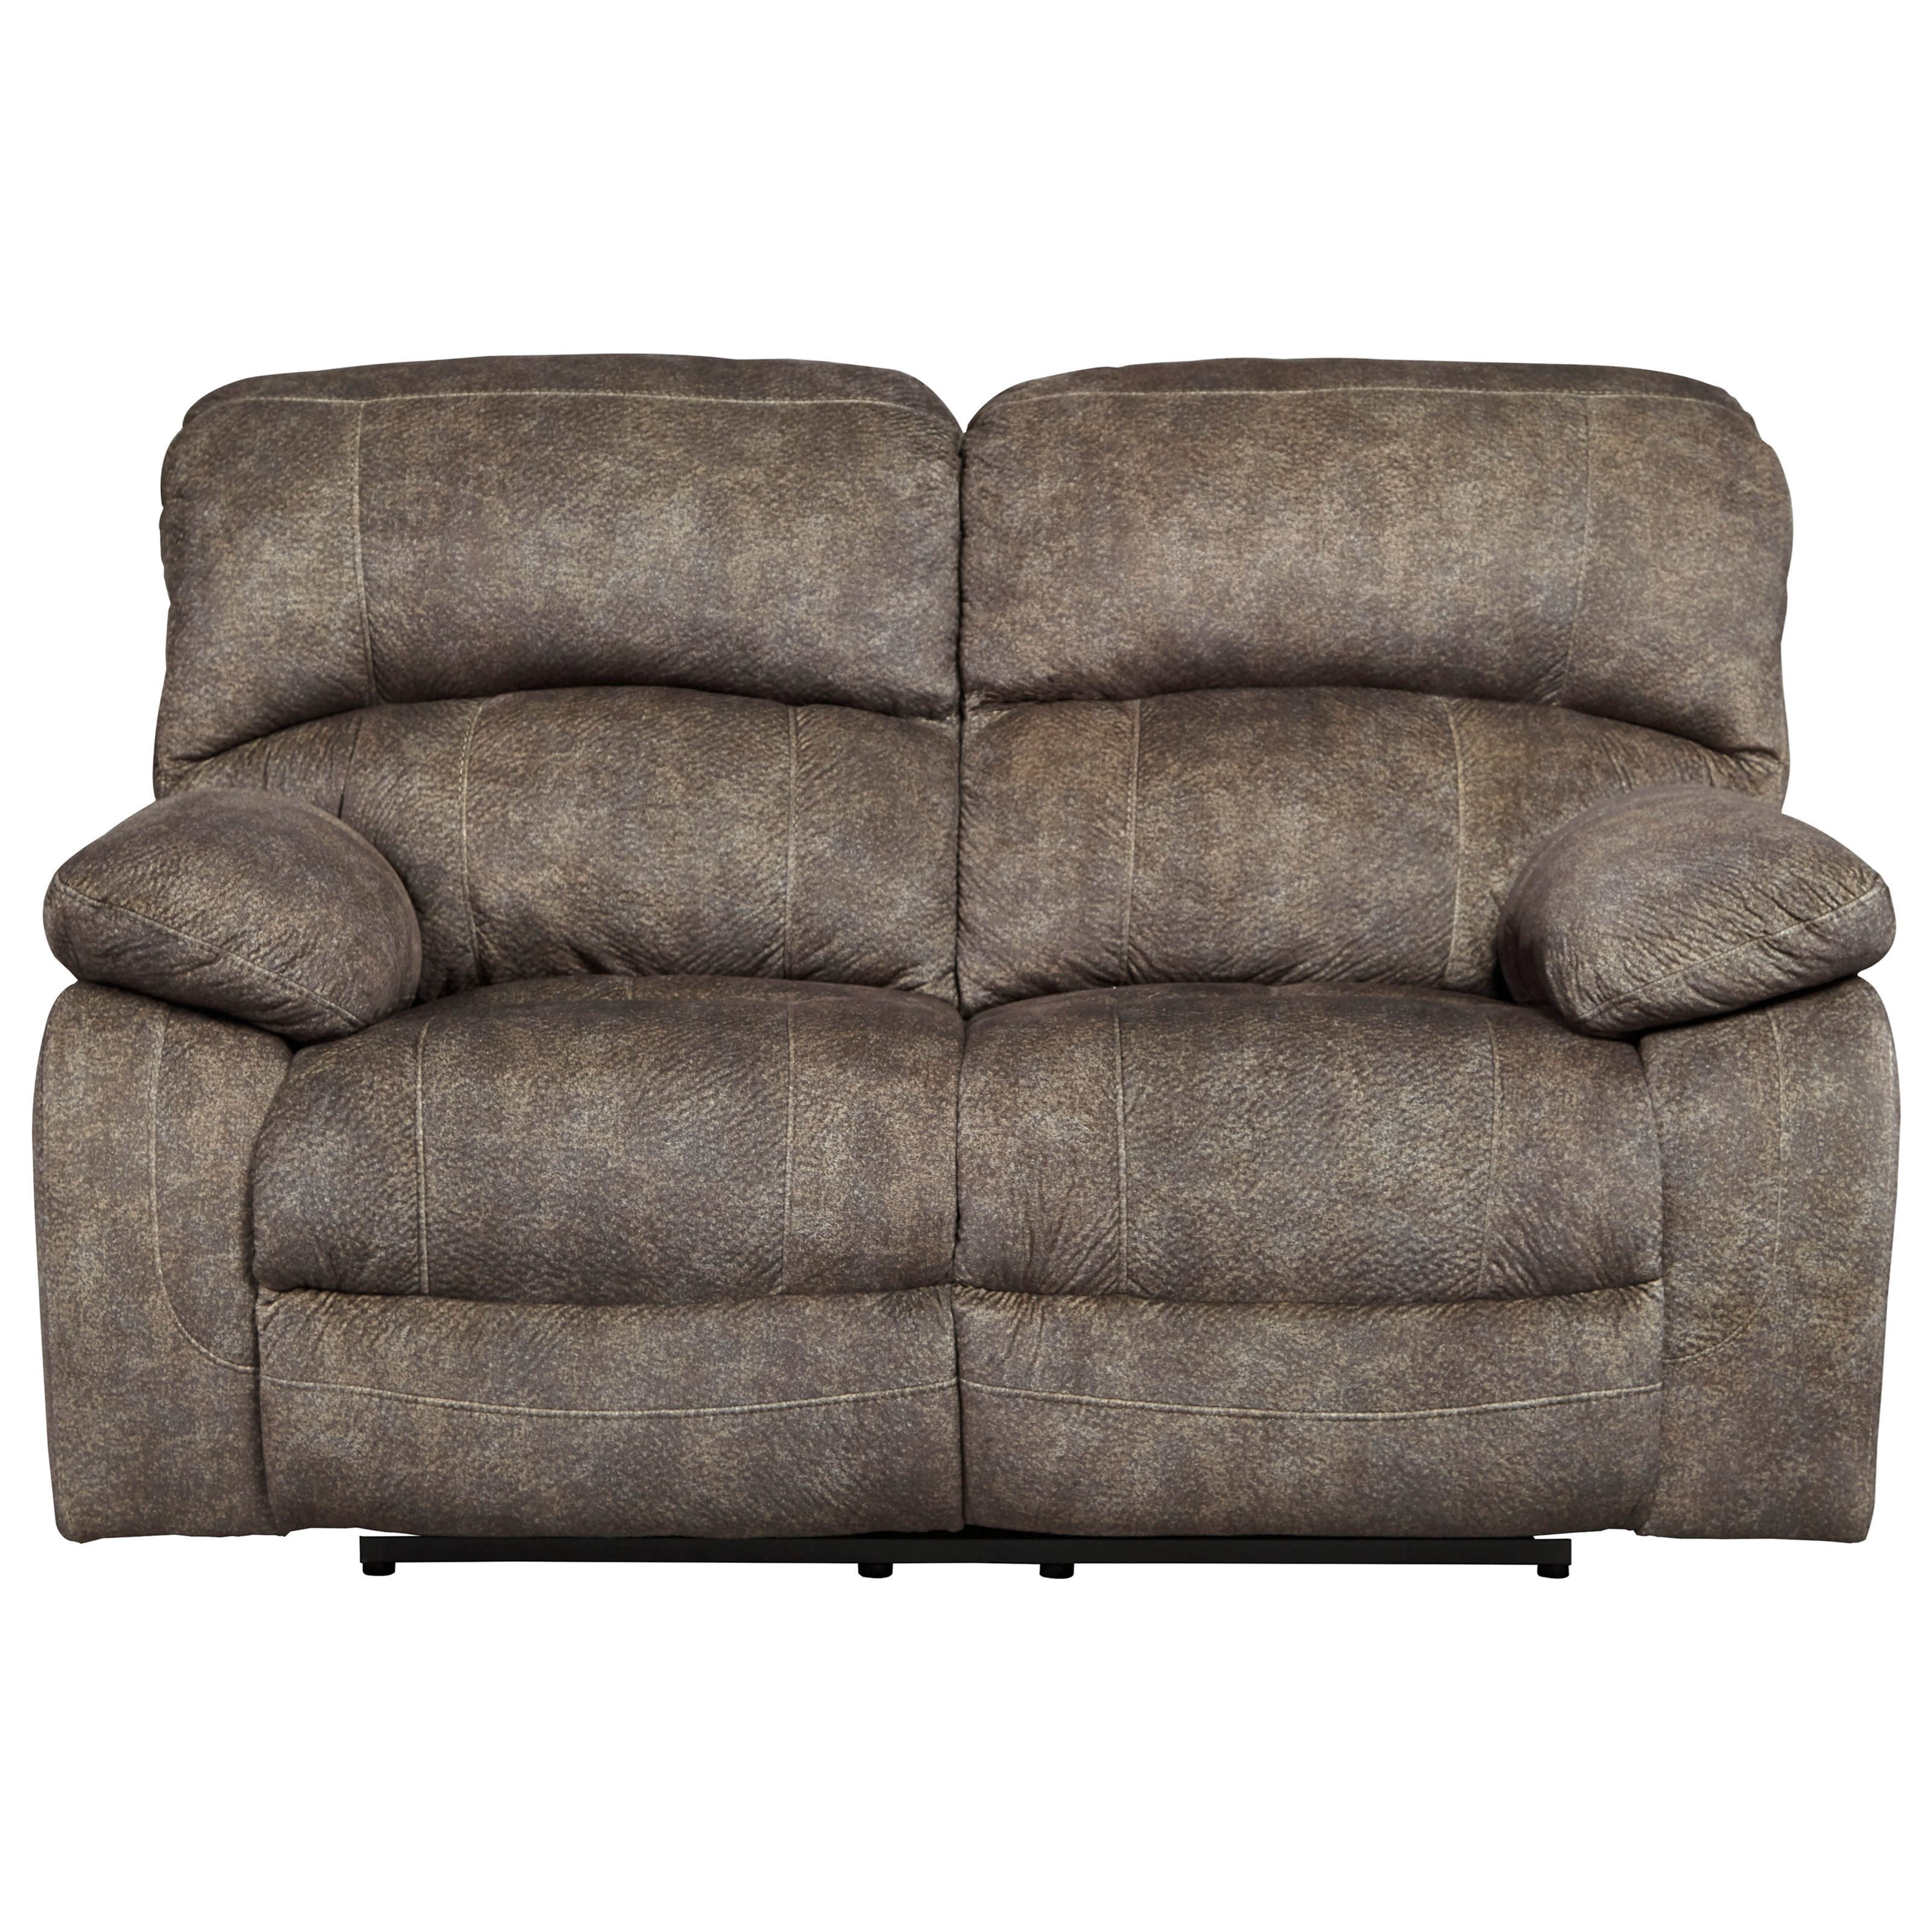 headrest recliners comfort room s transformer recliner power with comforter design kane products furniture black living